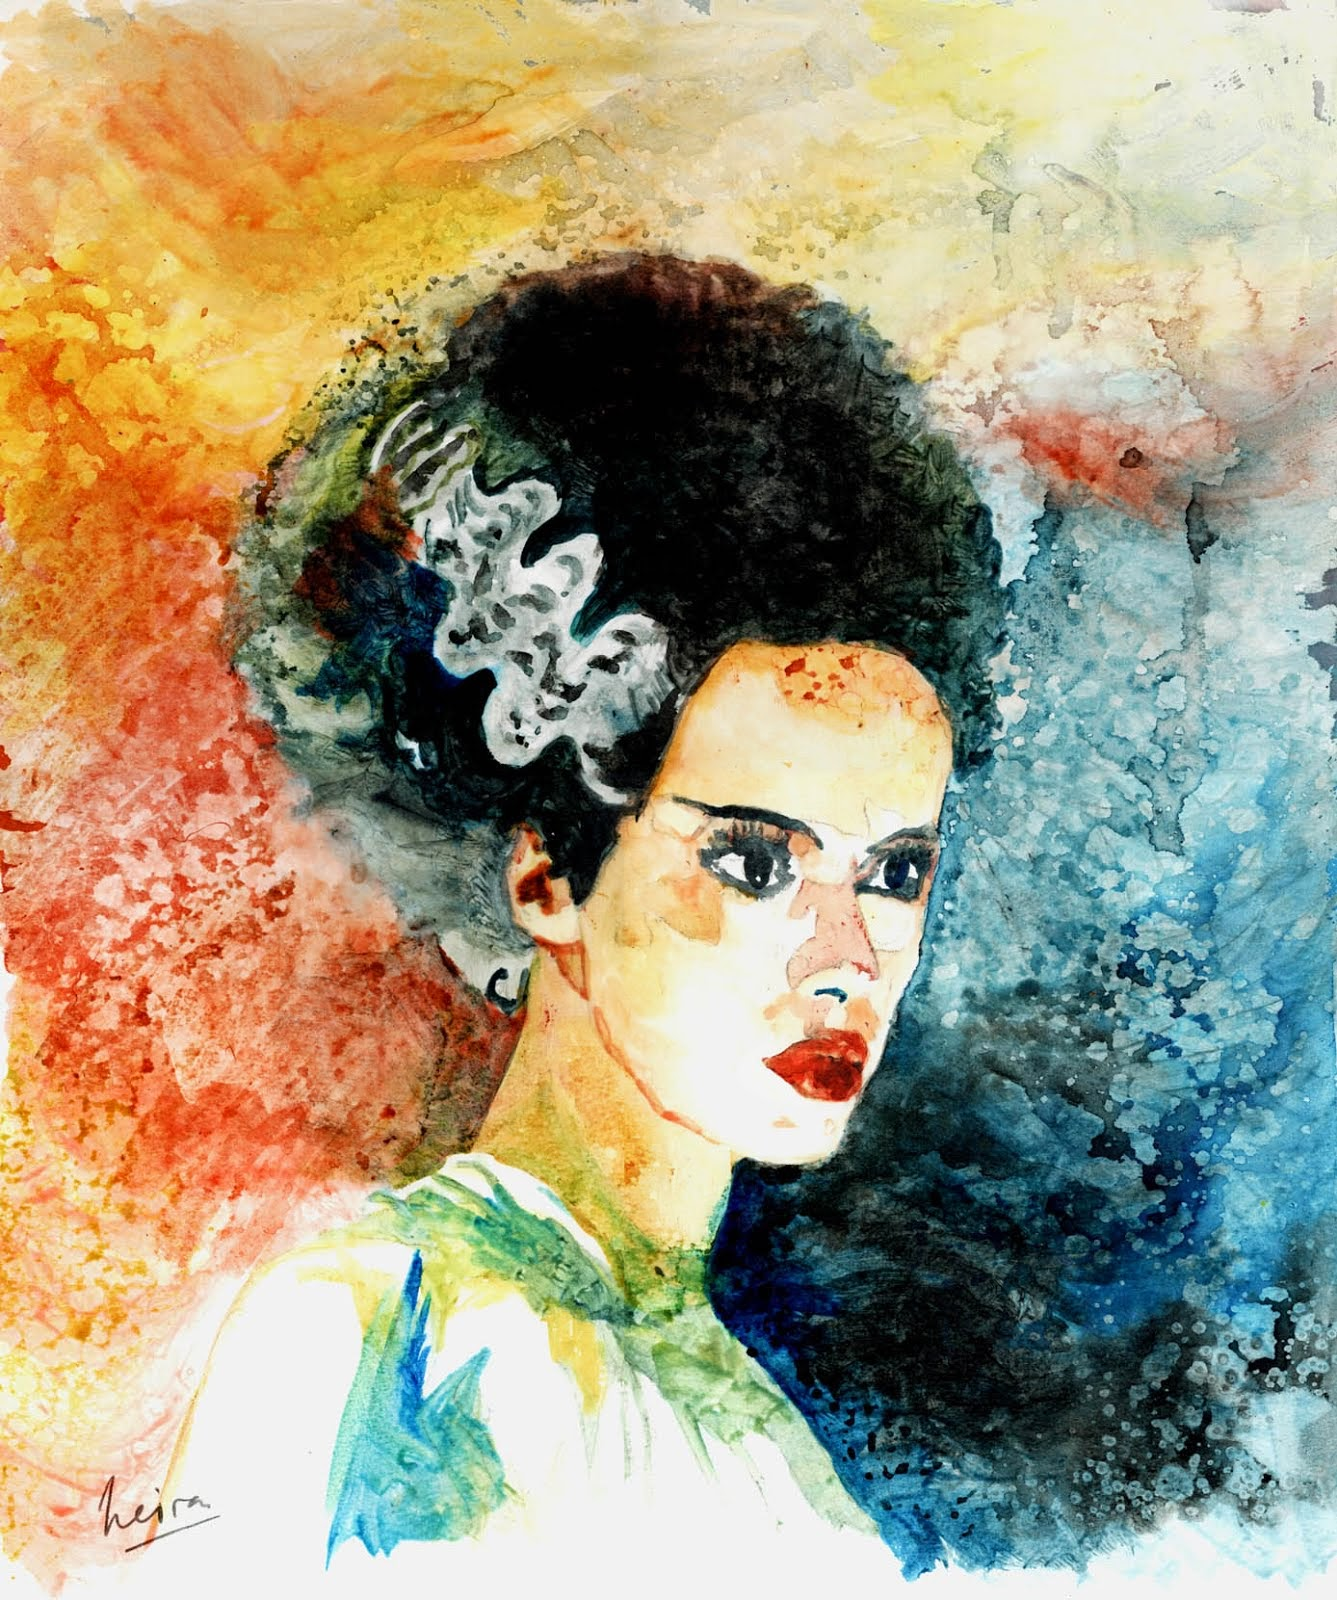 THE BRIDE OF FRANKENSTEIN II